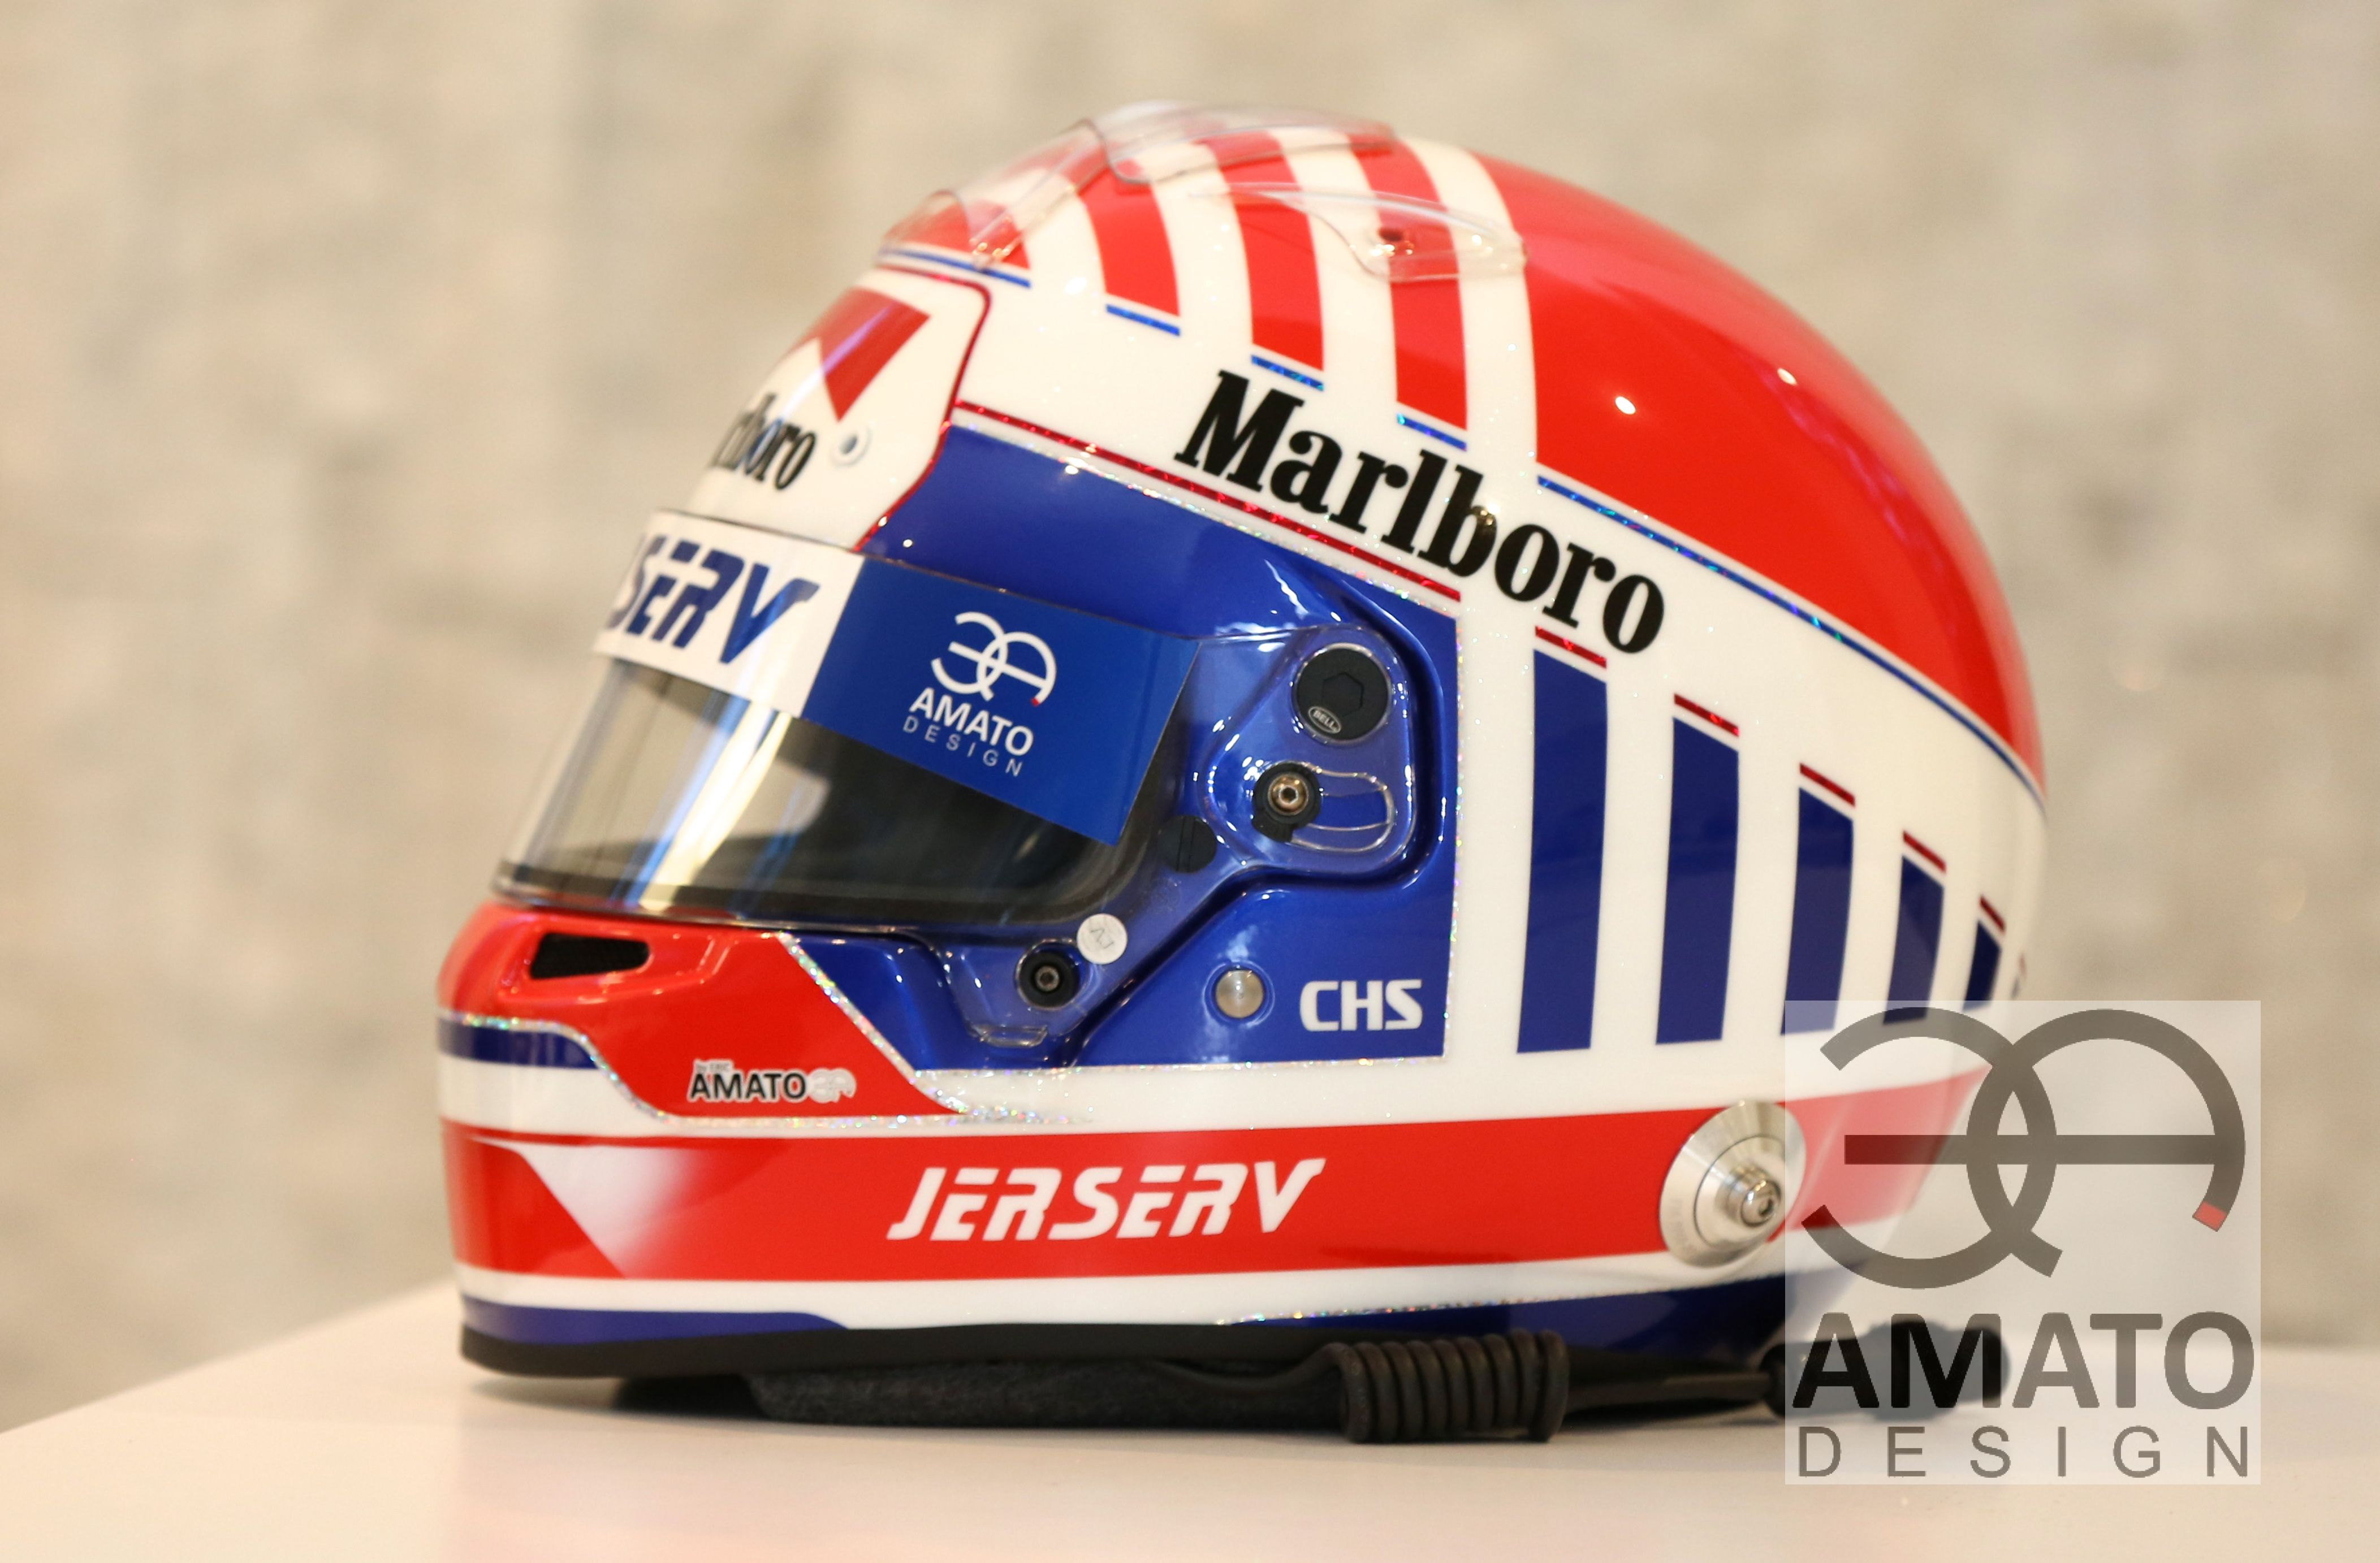 Casque AMATO DESIGN Charles-Henri S